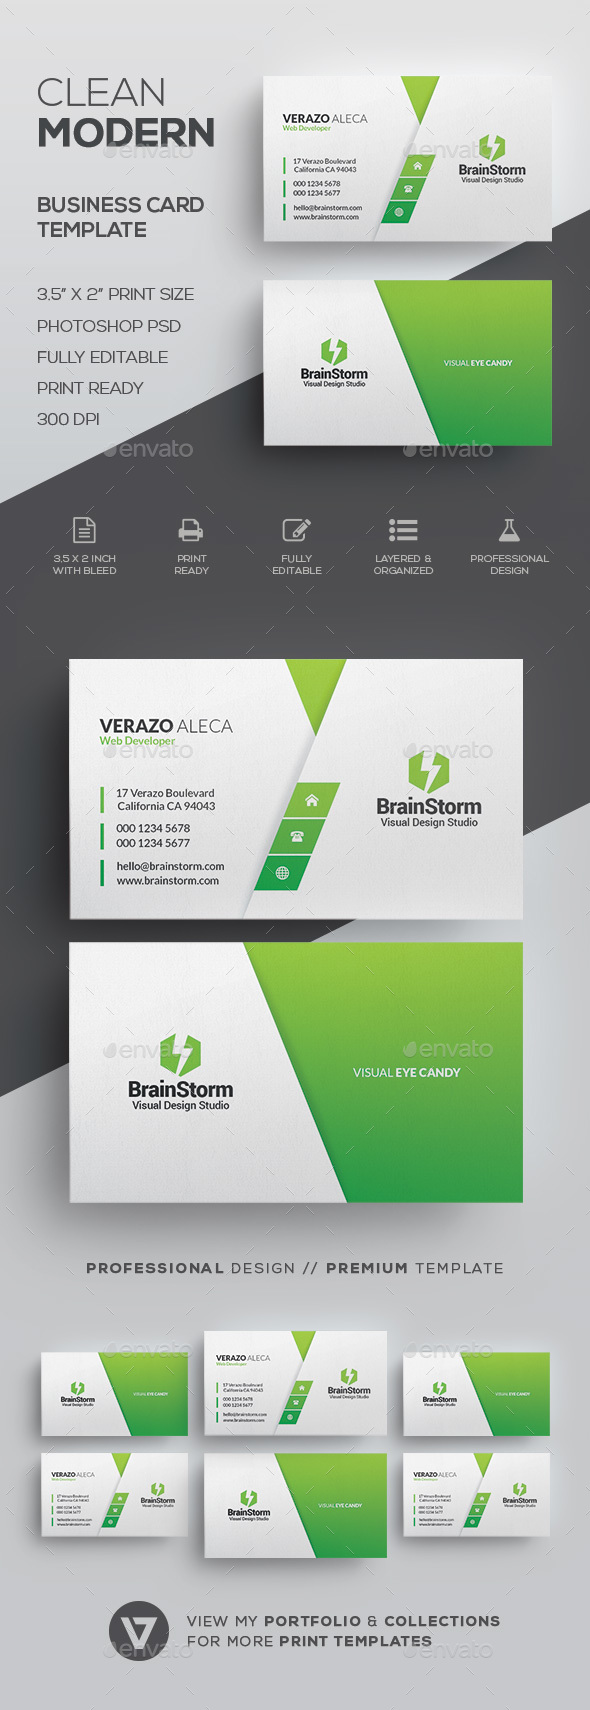 Clean Modern Business Card Template By Verazo GraphicRiver - Business card template pages